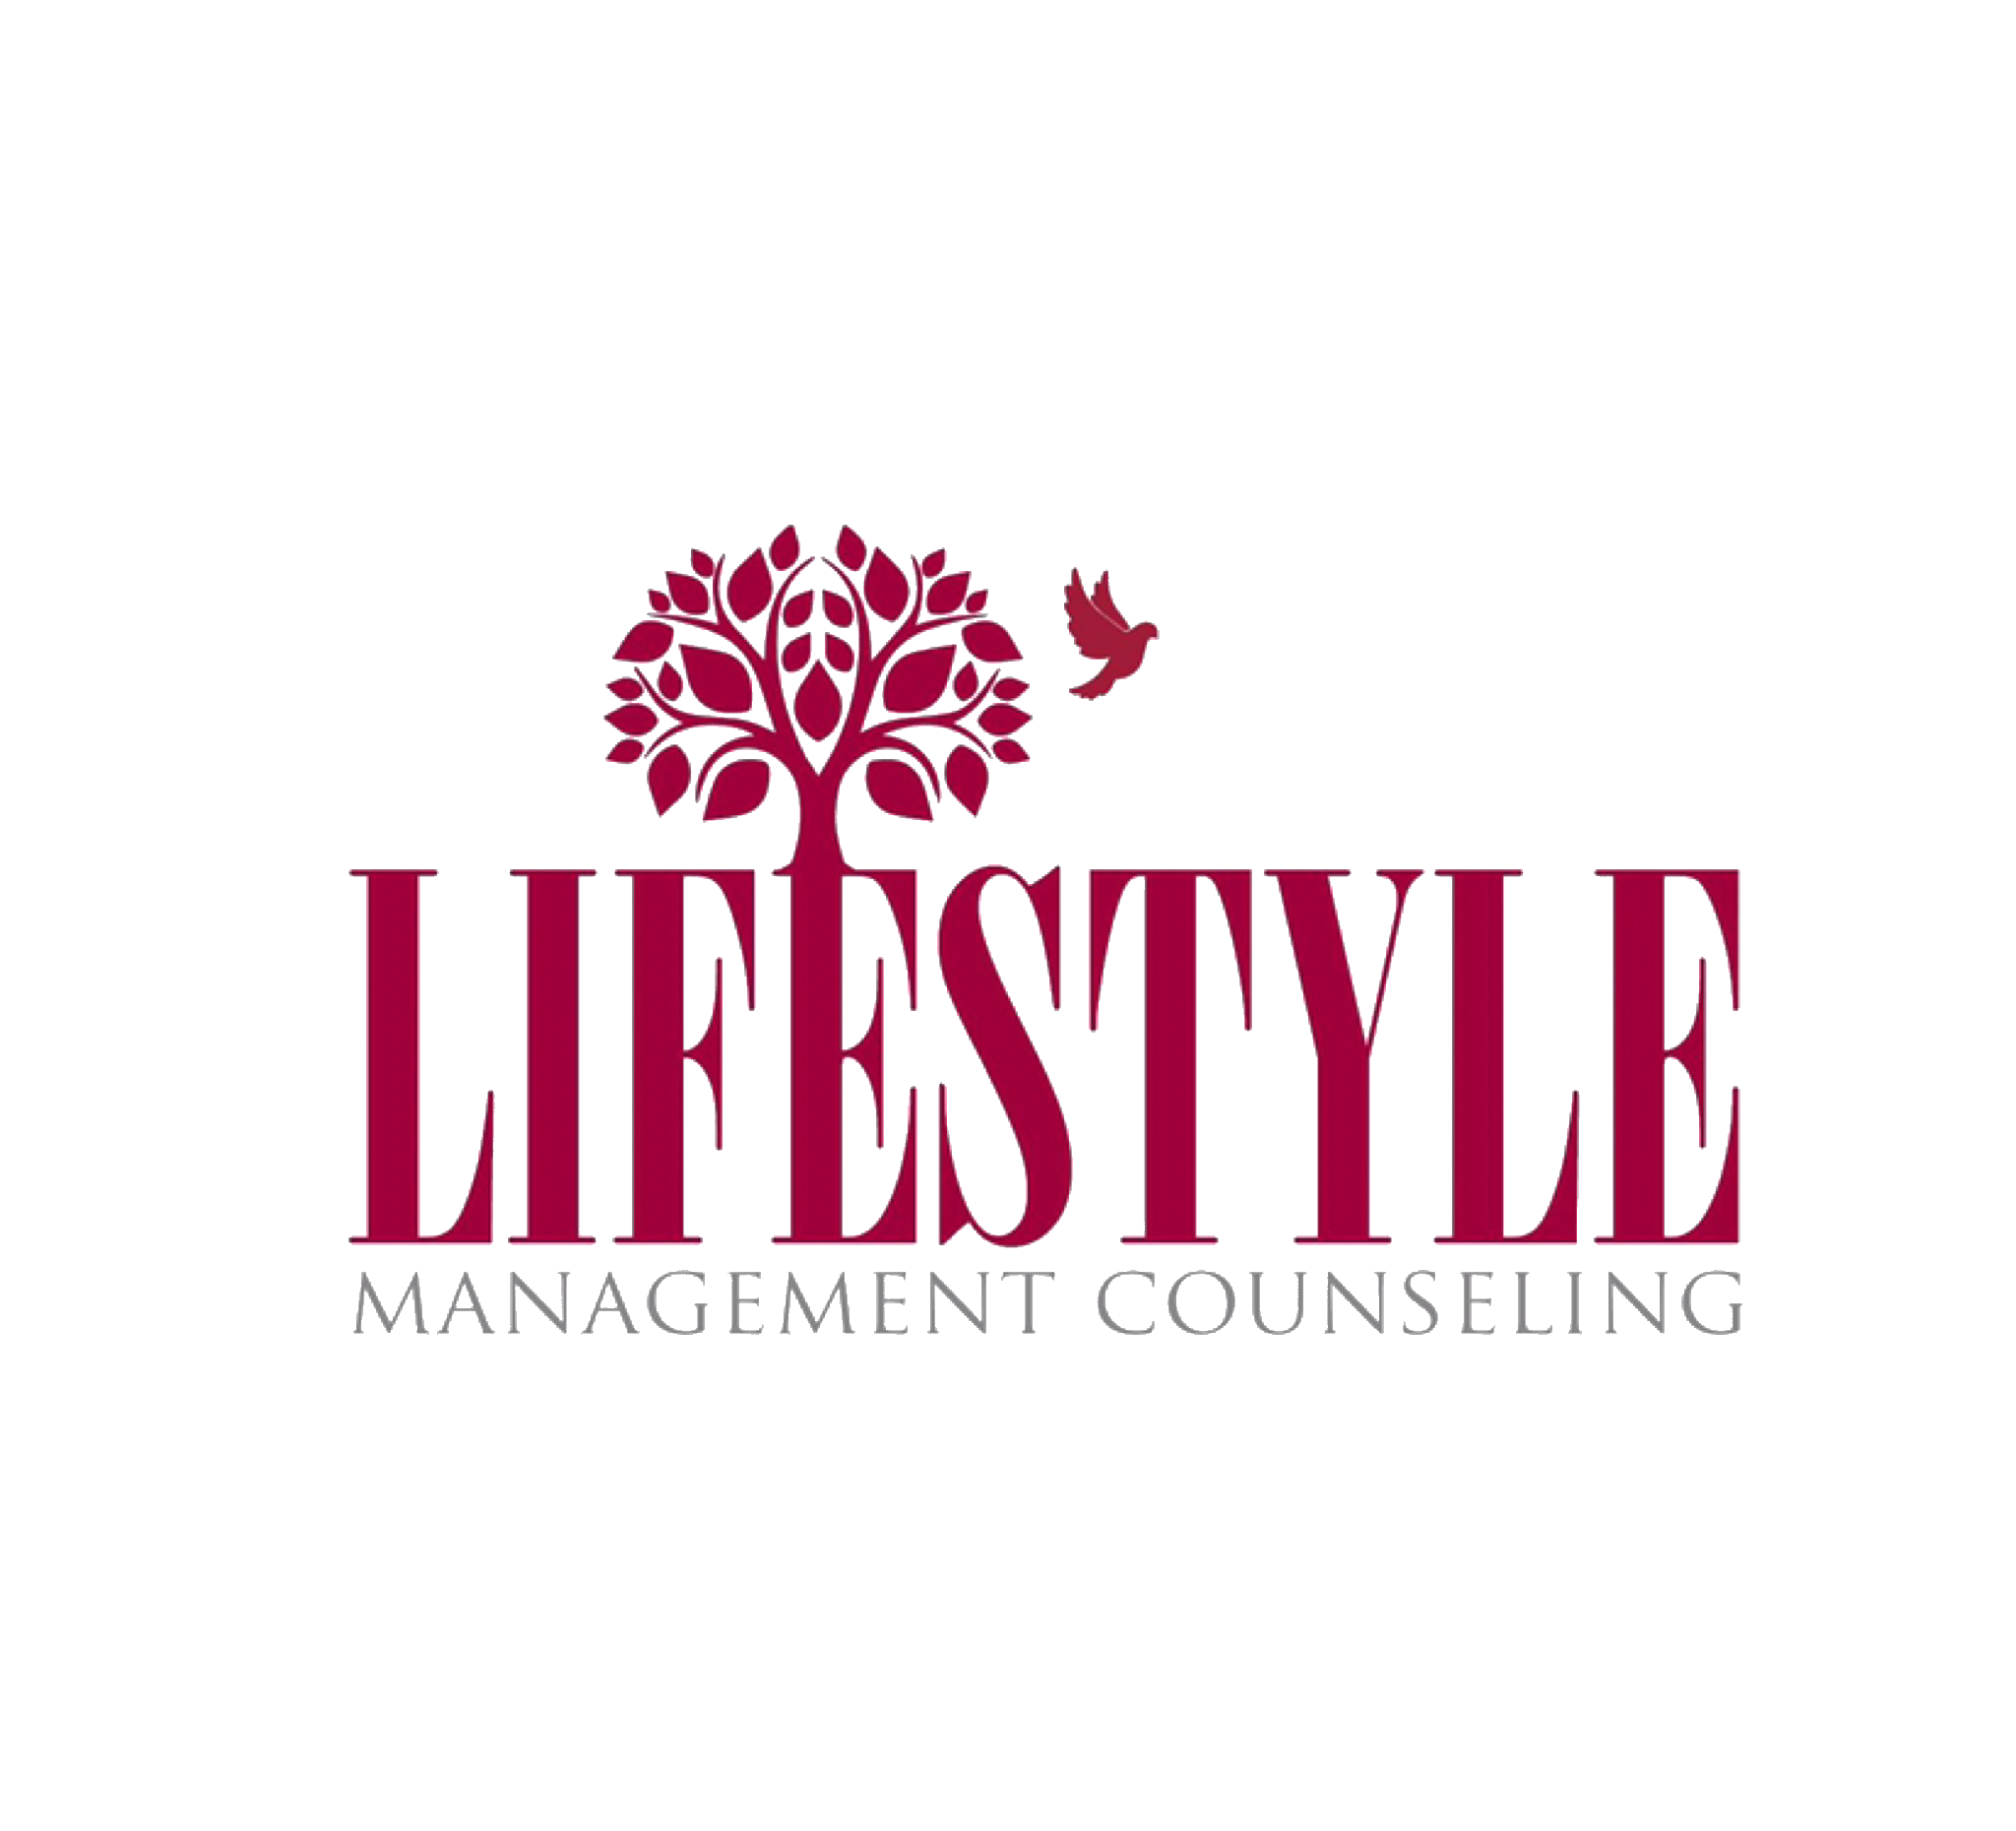 Lifestyle Management Counseling Center